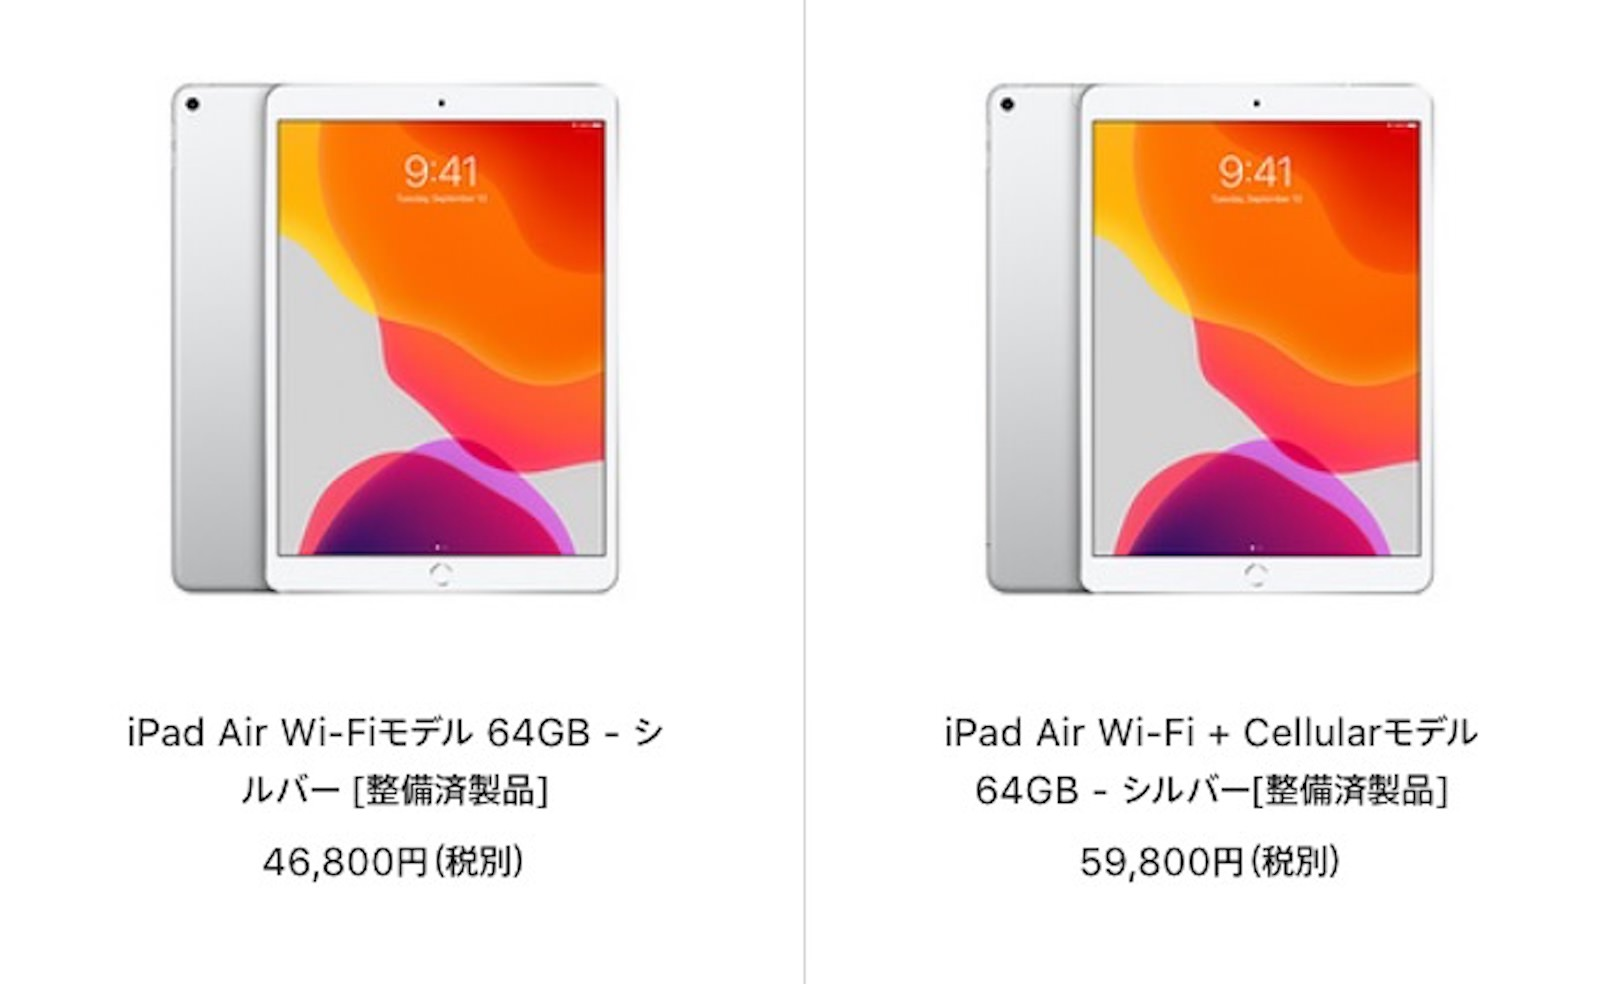 Ipad air refurbished models